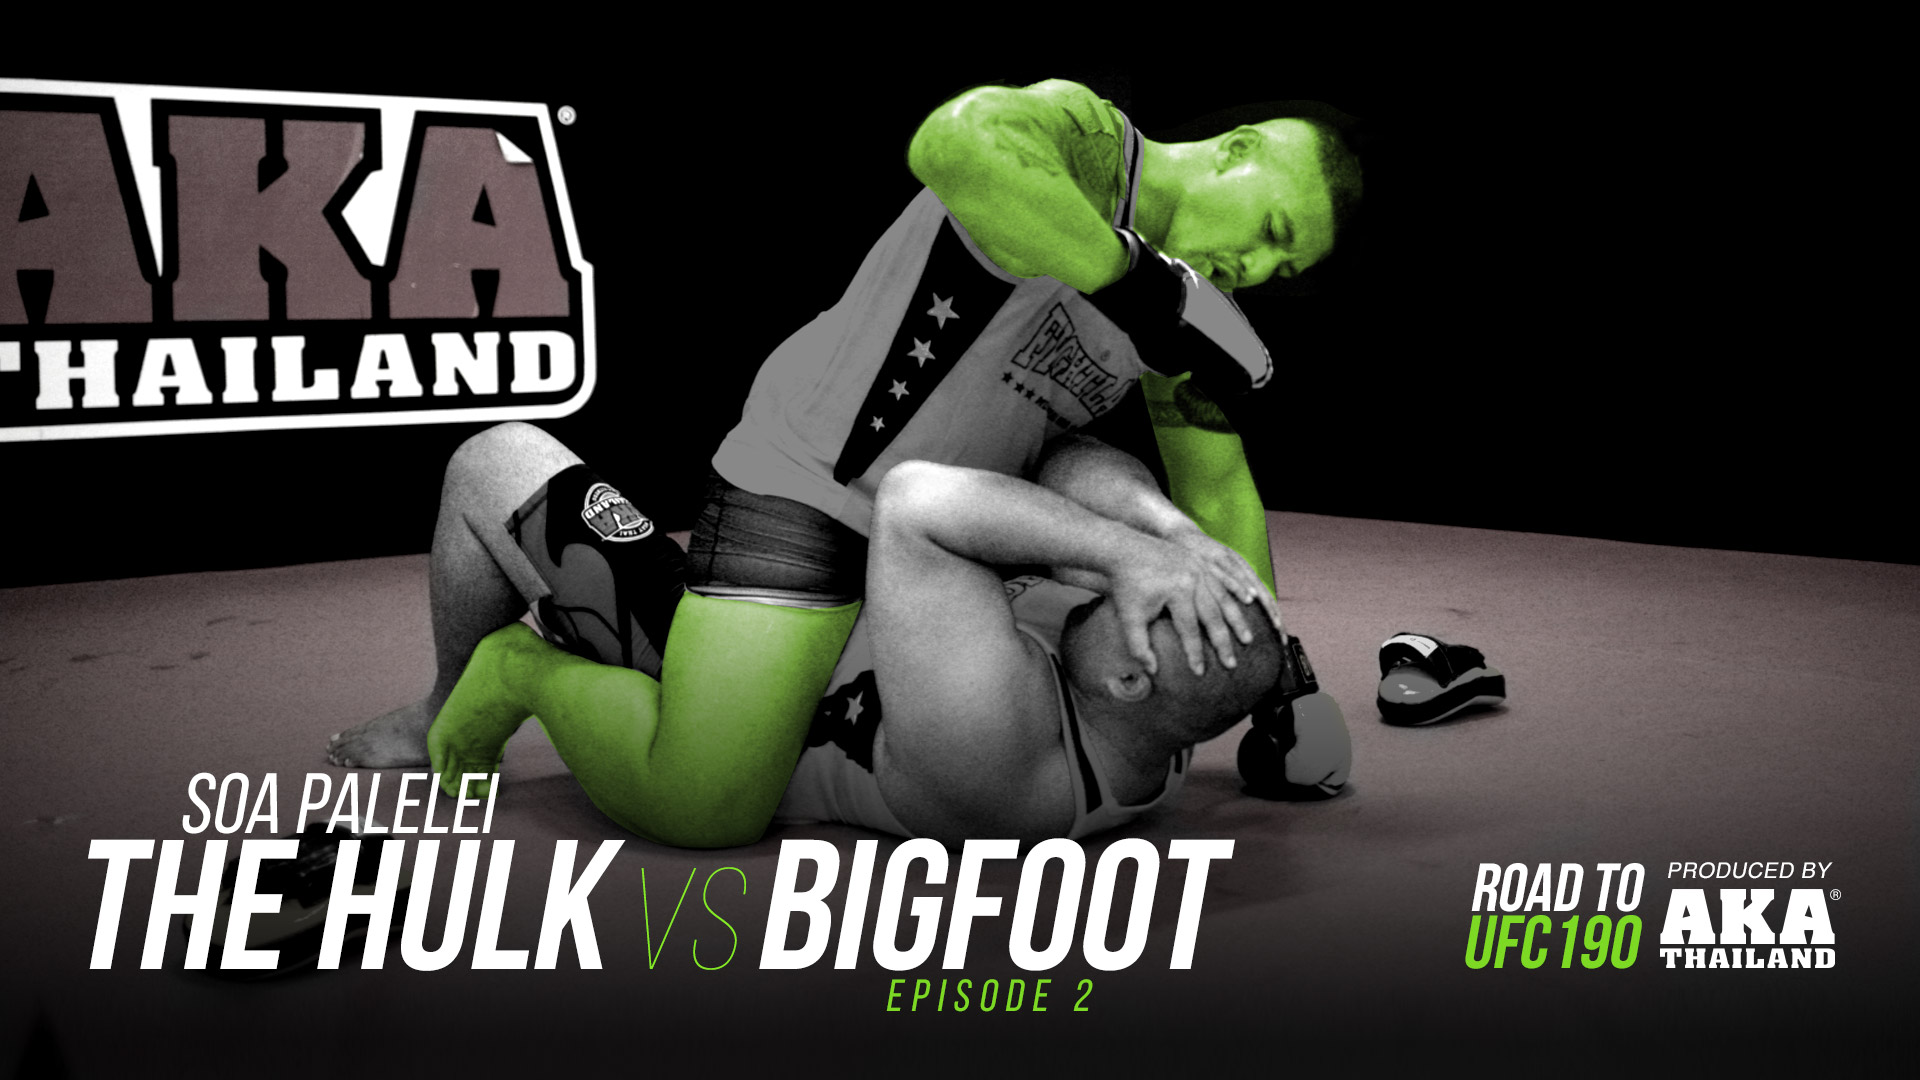 Soa Palelei: The Hulk vs. Bigfoot - Ep #2: Island Life - UFC 190